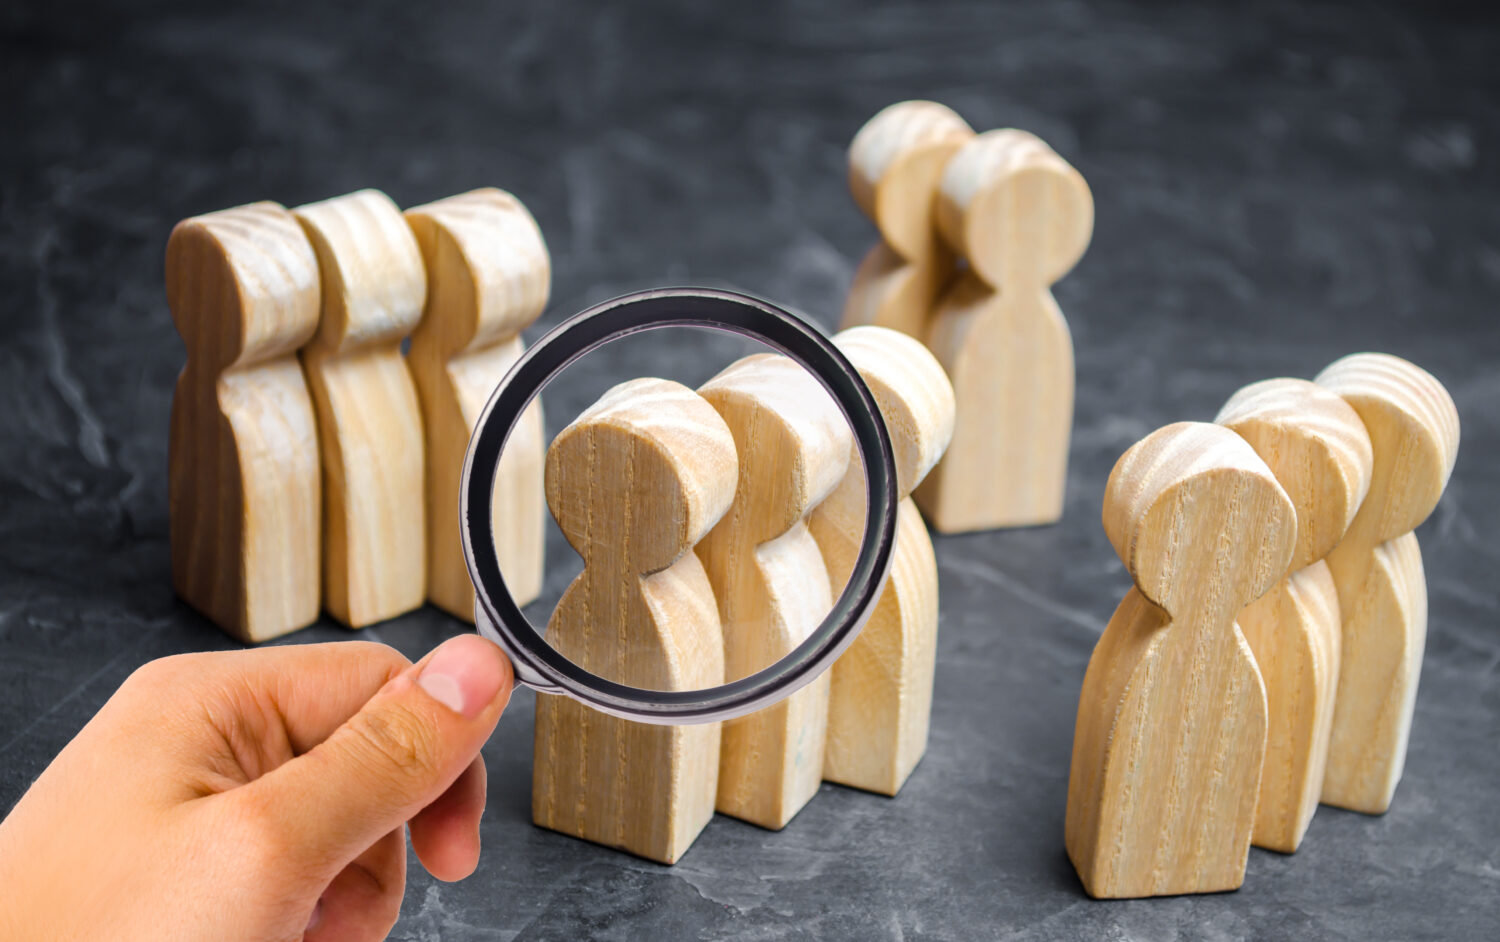 groups of wooden people with a hand holding a magnifying glass to look at them